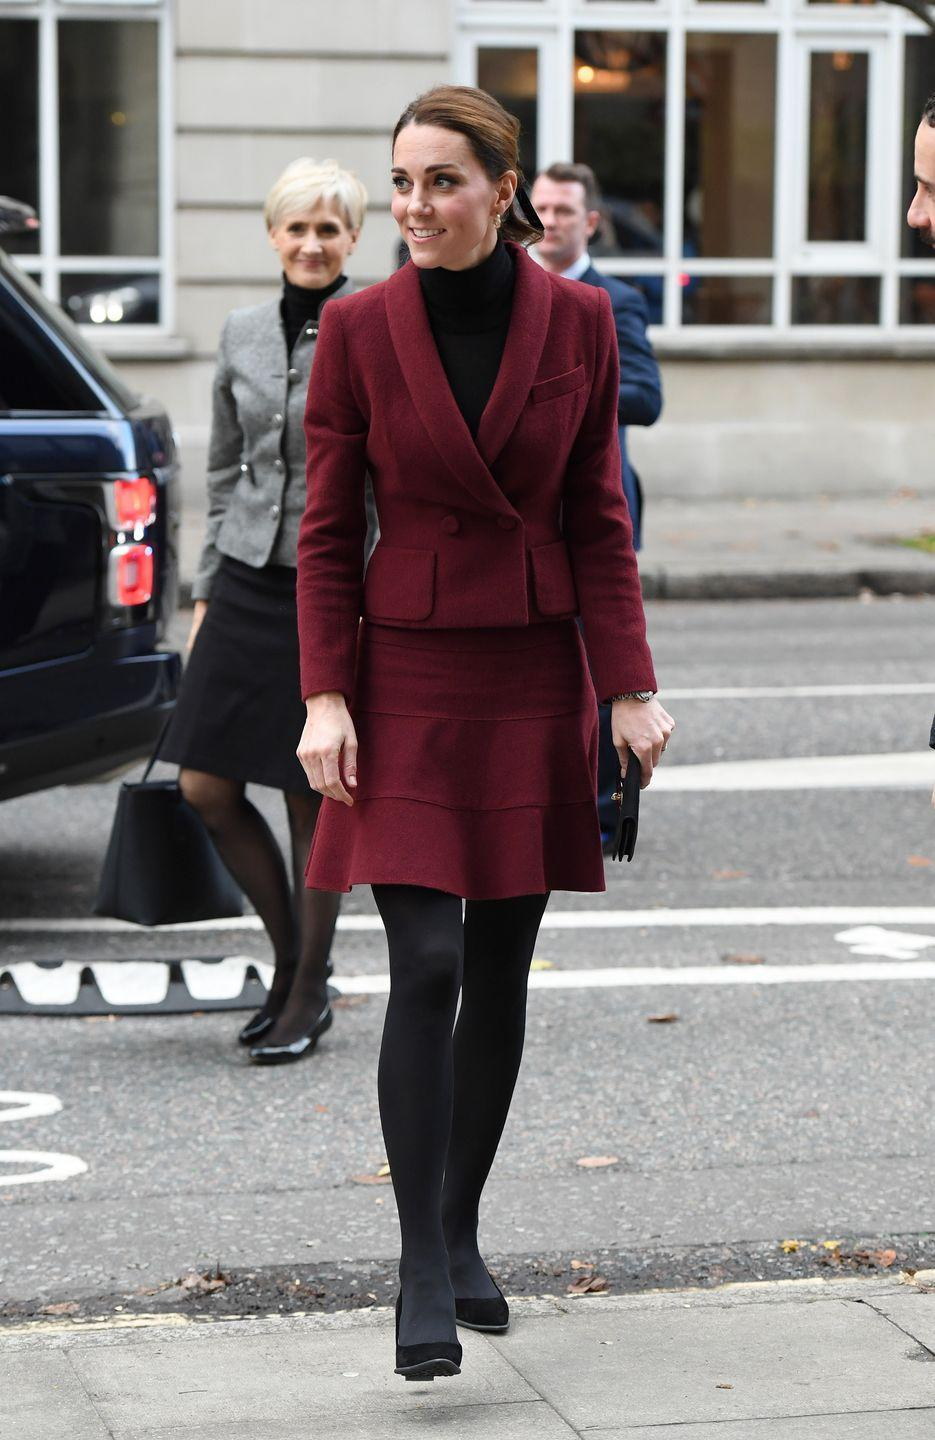 "<p>Kate paid a visit to University College London wearing a skirt and blazer by Paule Ka. She paired it with Tod's suede heels and a turtleneck. The Duchess actually recycled this ensemble: she <a href=""https://twitter.com/WhatKateWore/status/1065250724542586881"" rel=""nofollow noopener"" target=""_blank"" data-ylk=""slk:has sported the Paule Ka skirted suit on at least two previous occasions"" class=""link rapid-noclick-resp"">has sported the Paule Ka skirted suit on at least two previous occasions</a>.</p>"